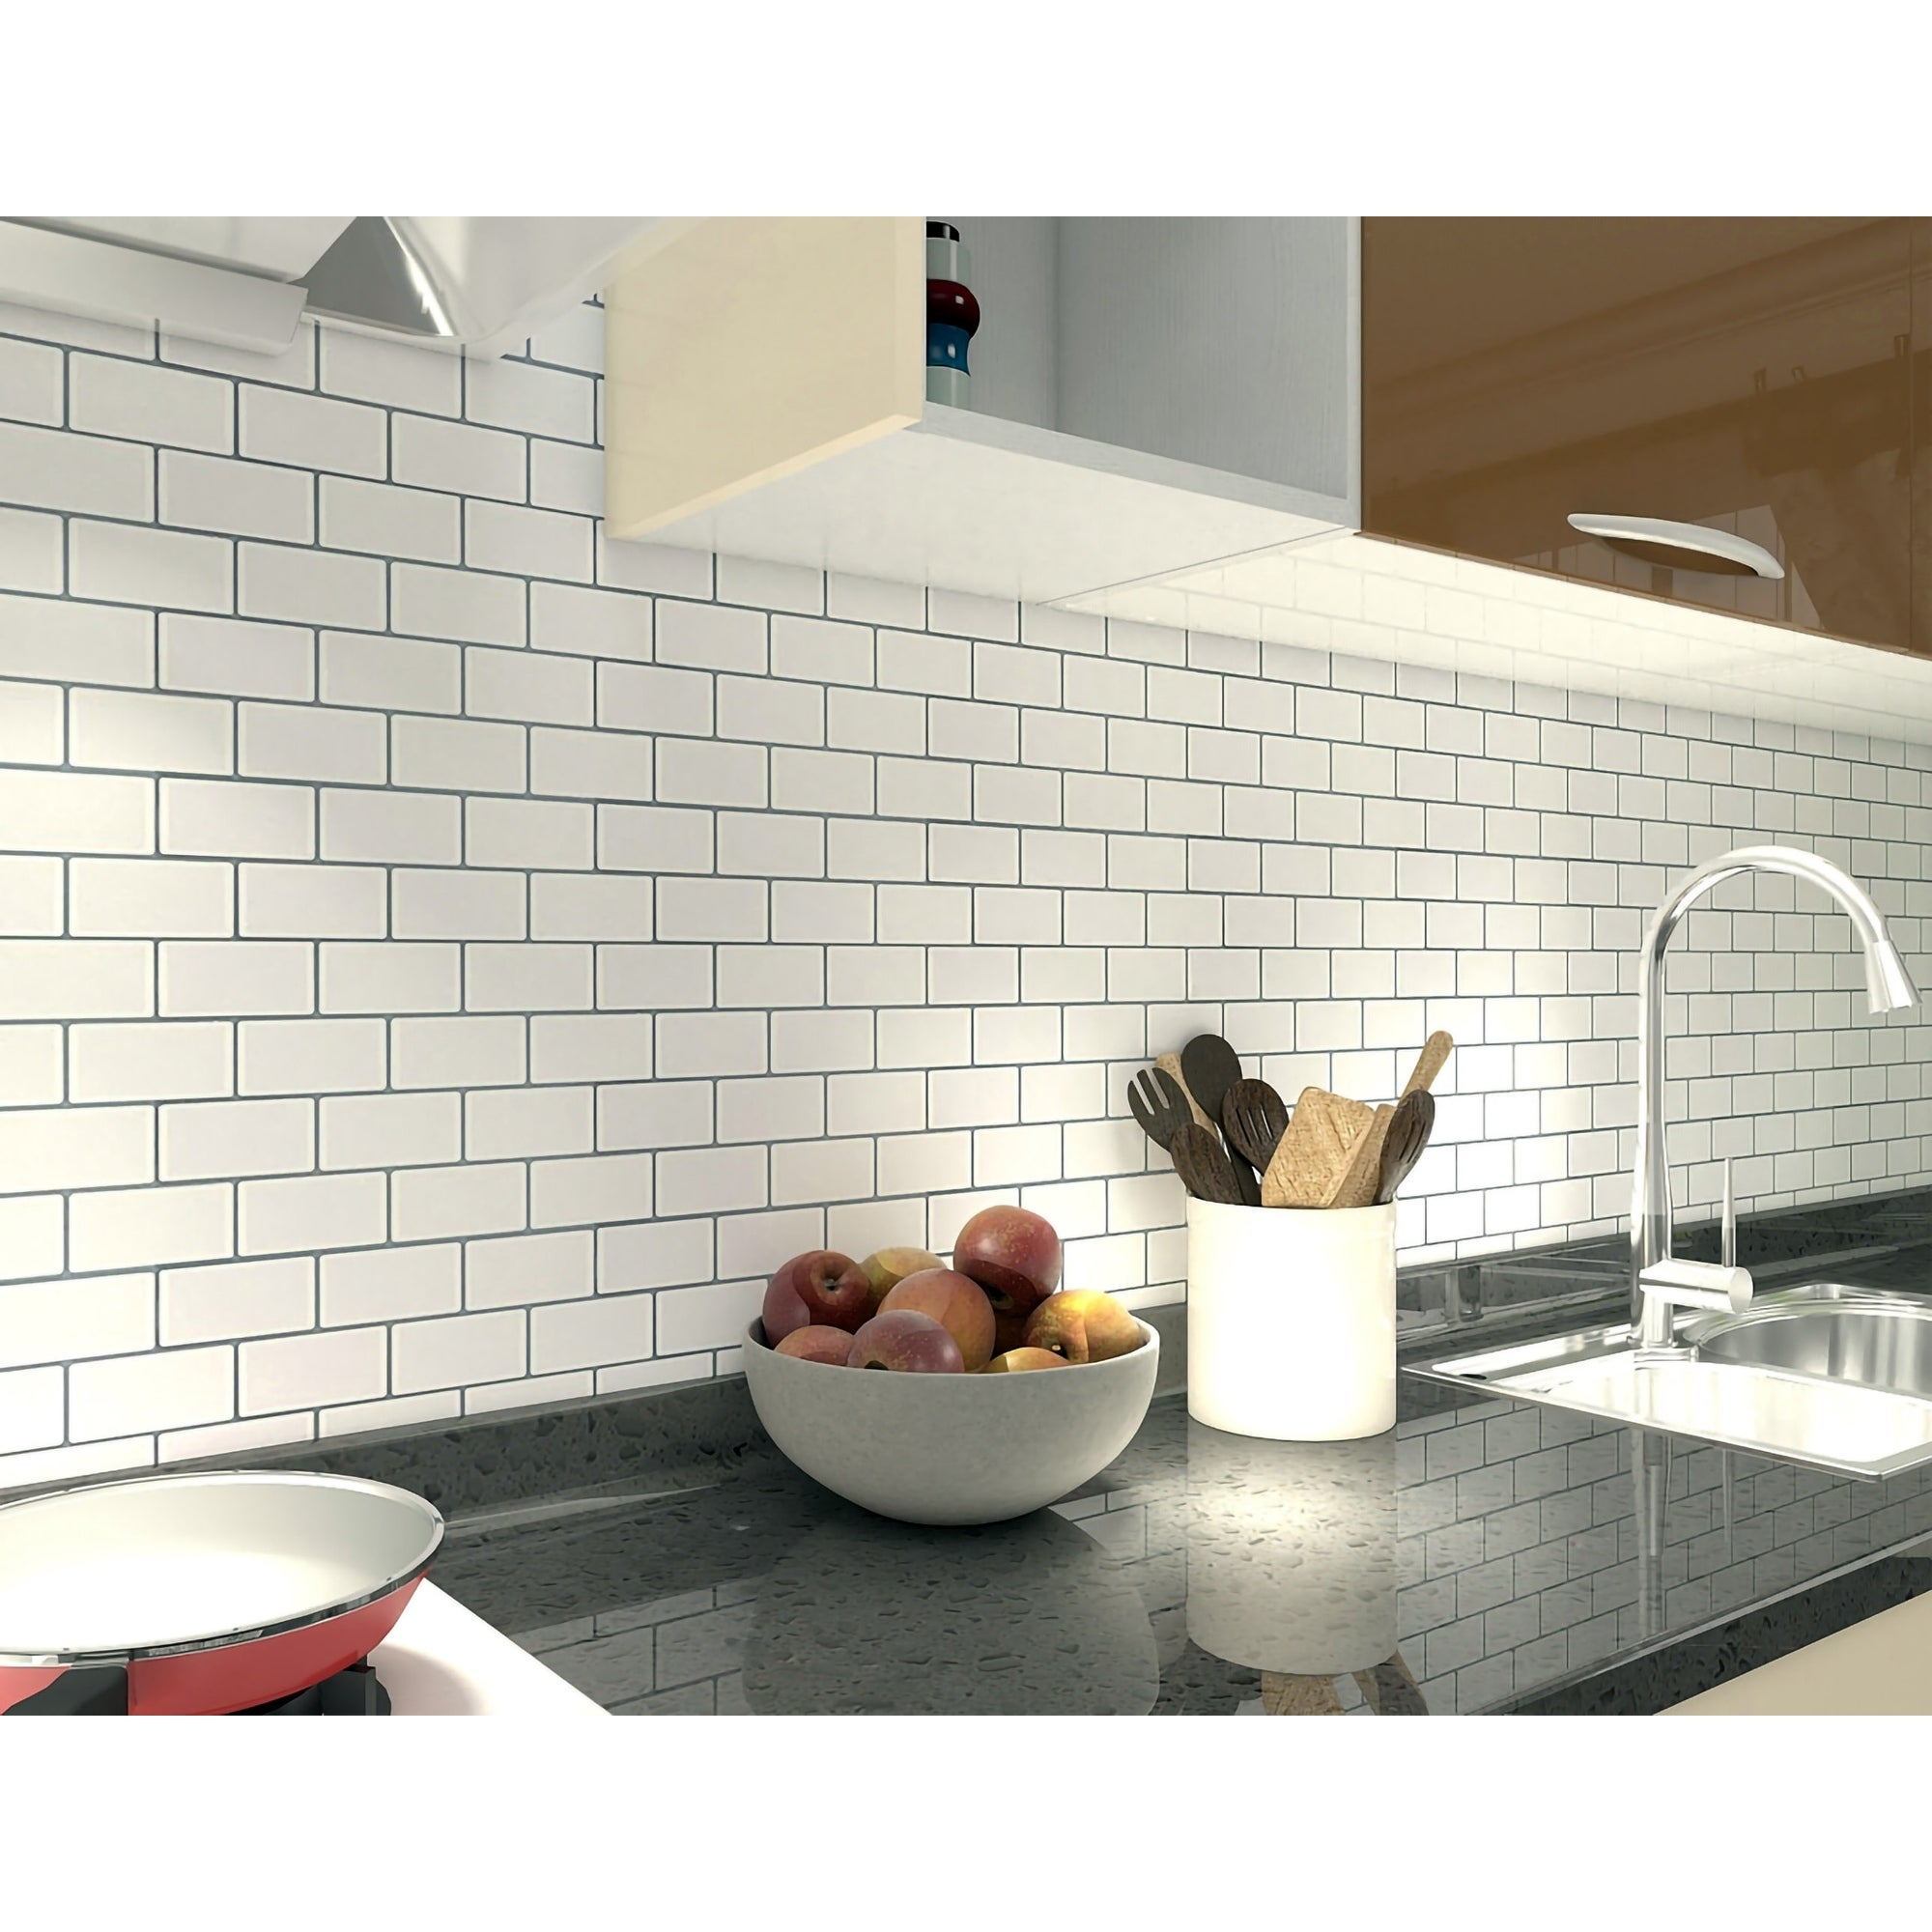 Art3d 12 X12 Vinyl Peel And Stick Backsplash Tile 10 Pack Floral White Overstock 31500800